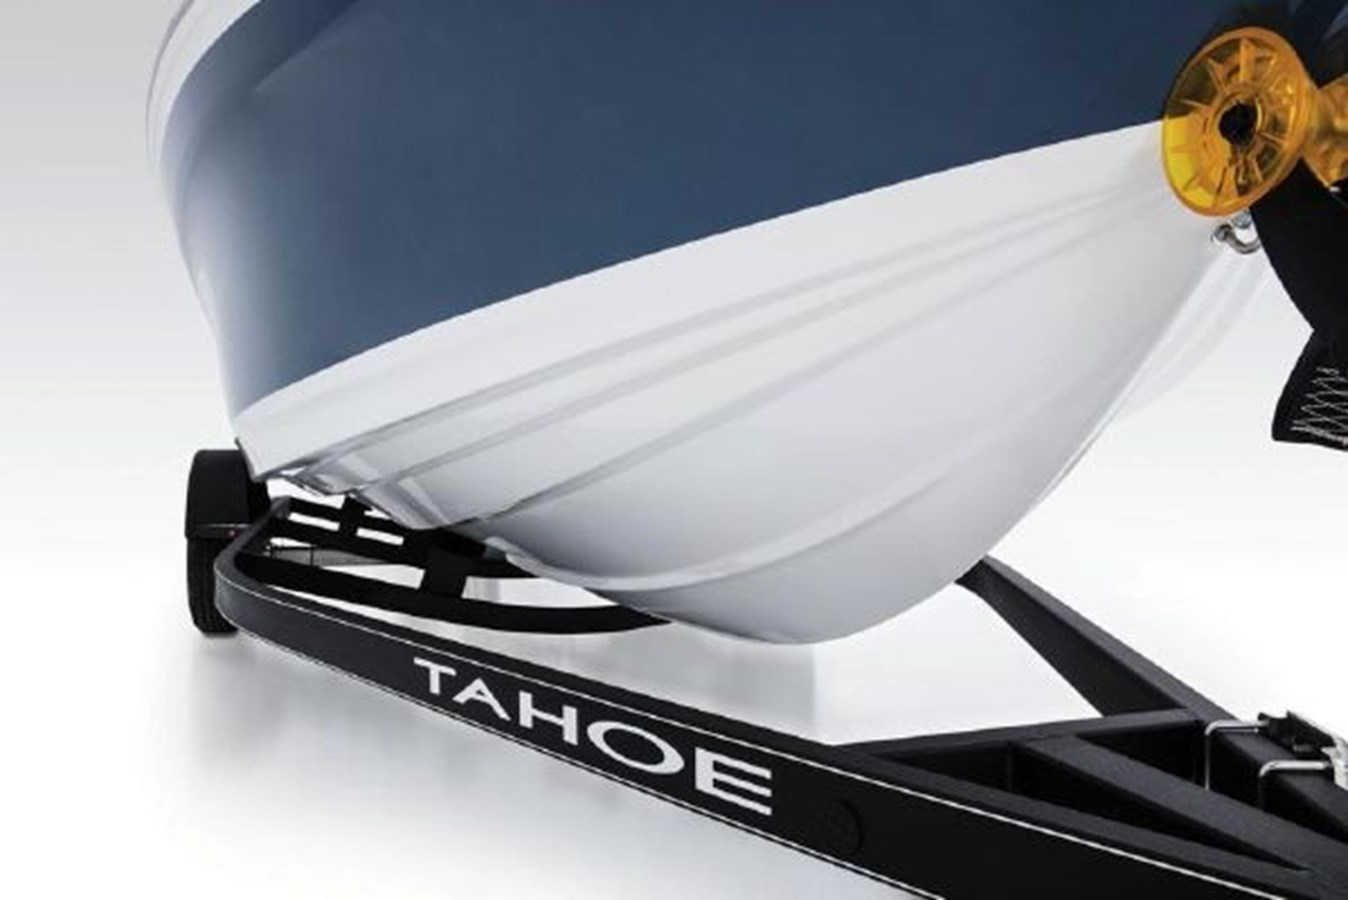 32 2018 Tahoe 500 TS Runabout 2751430